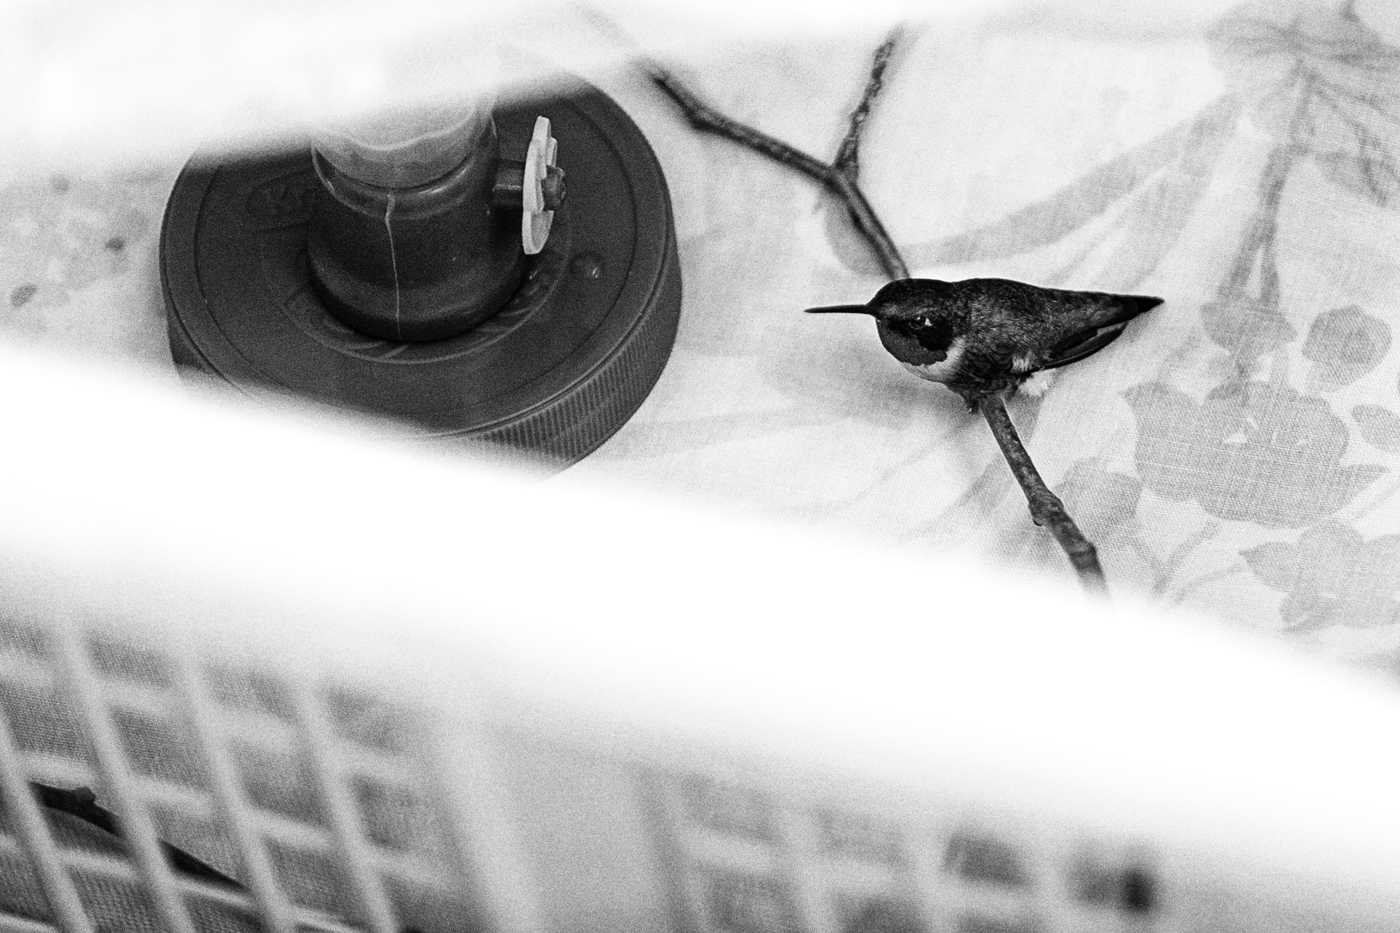 A humming bird in a crate.